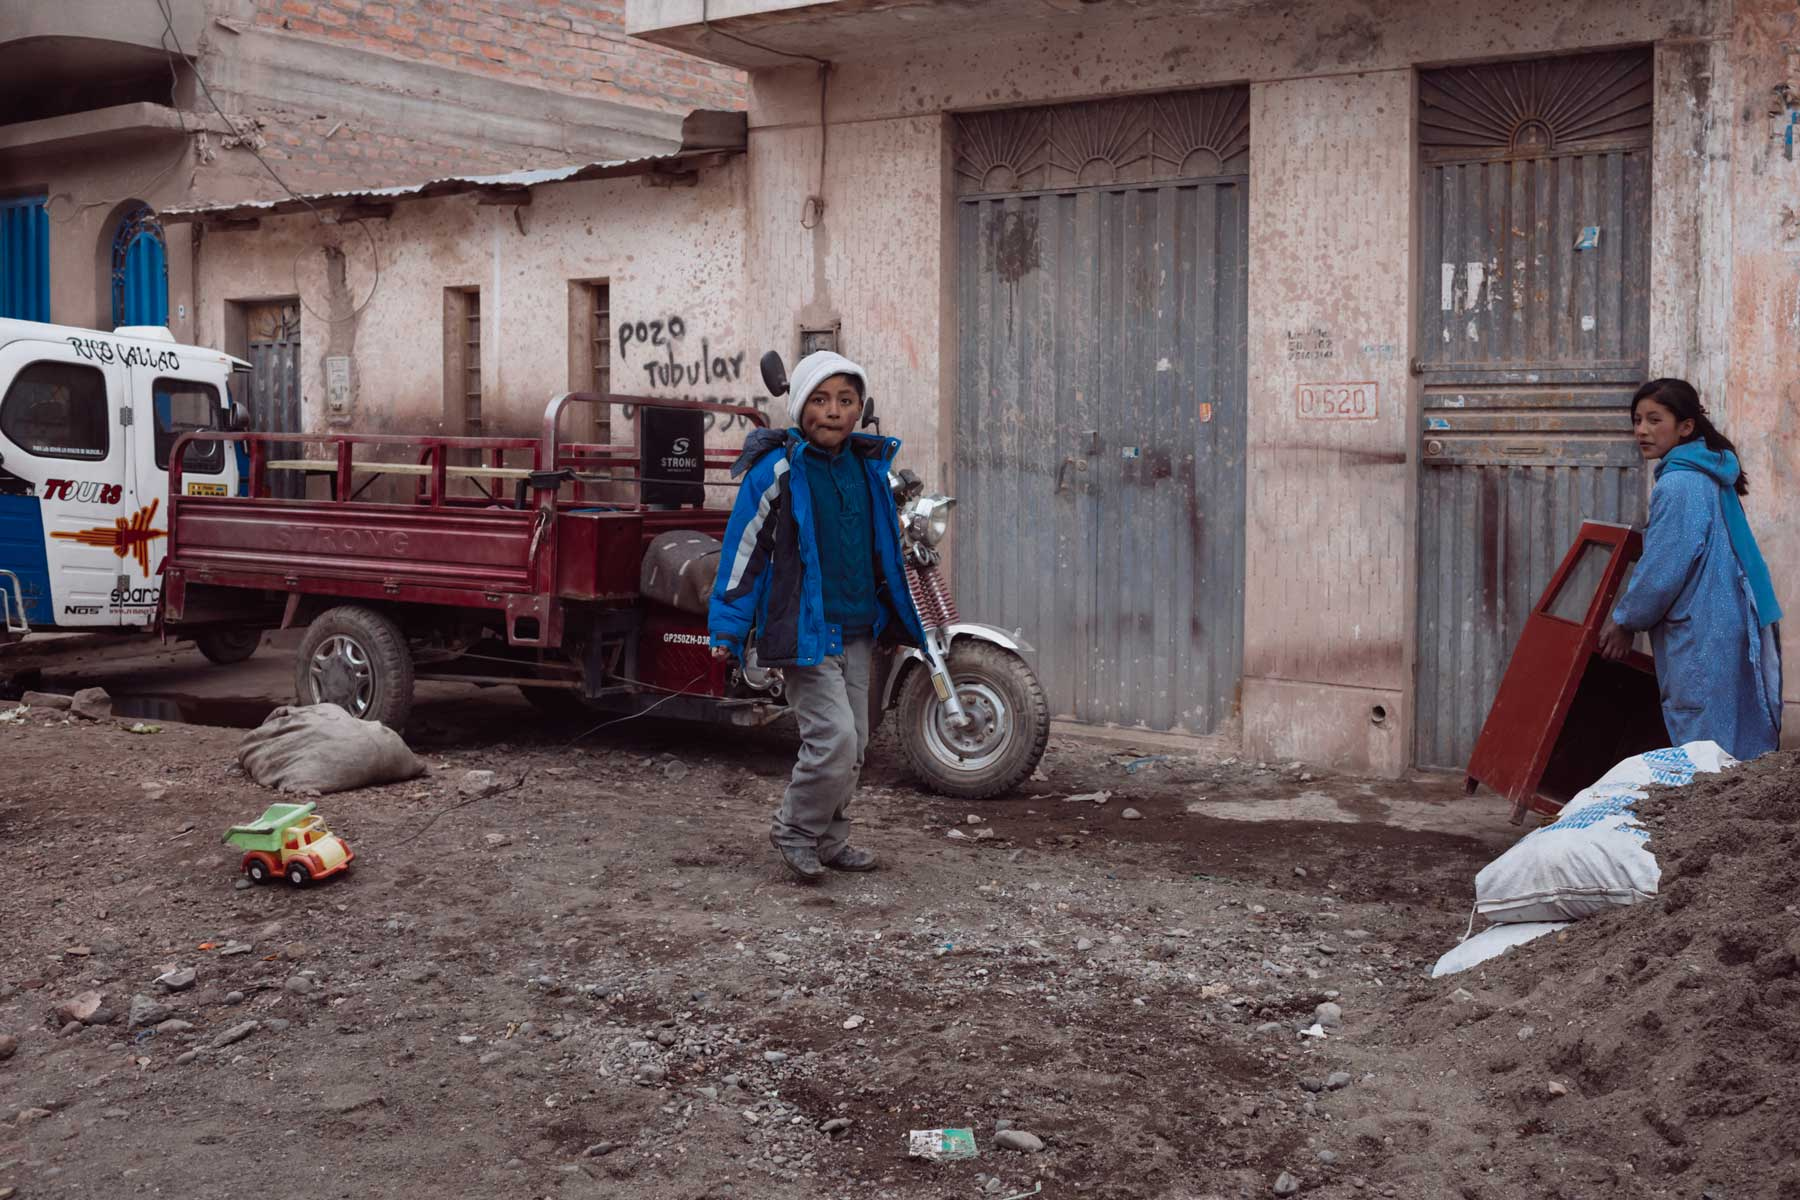 Two children playing with a toy dump truck in a residential area in Juliaca.